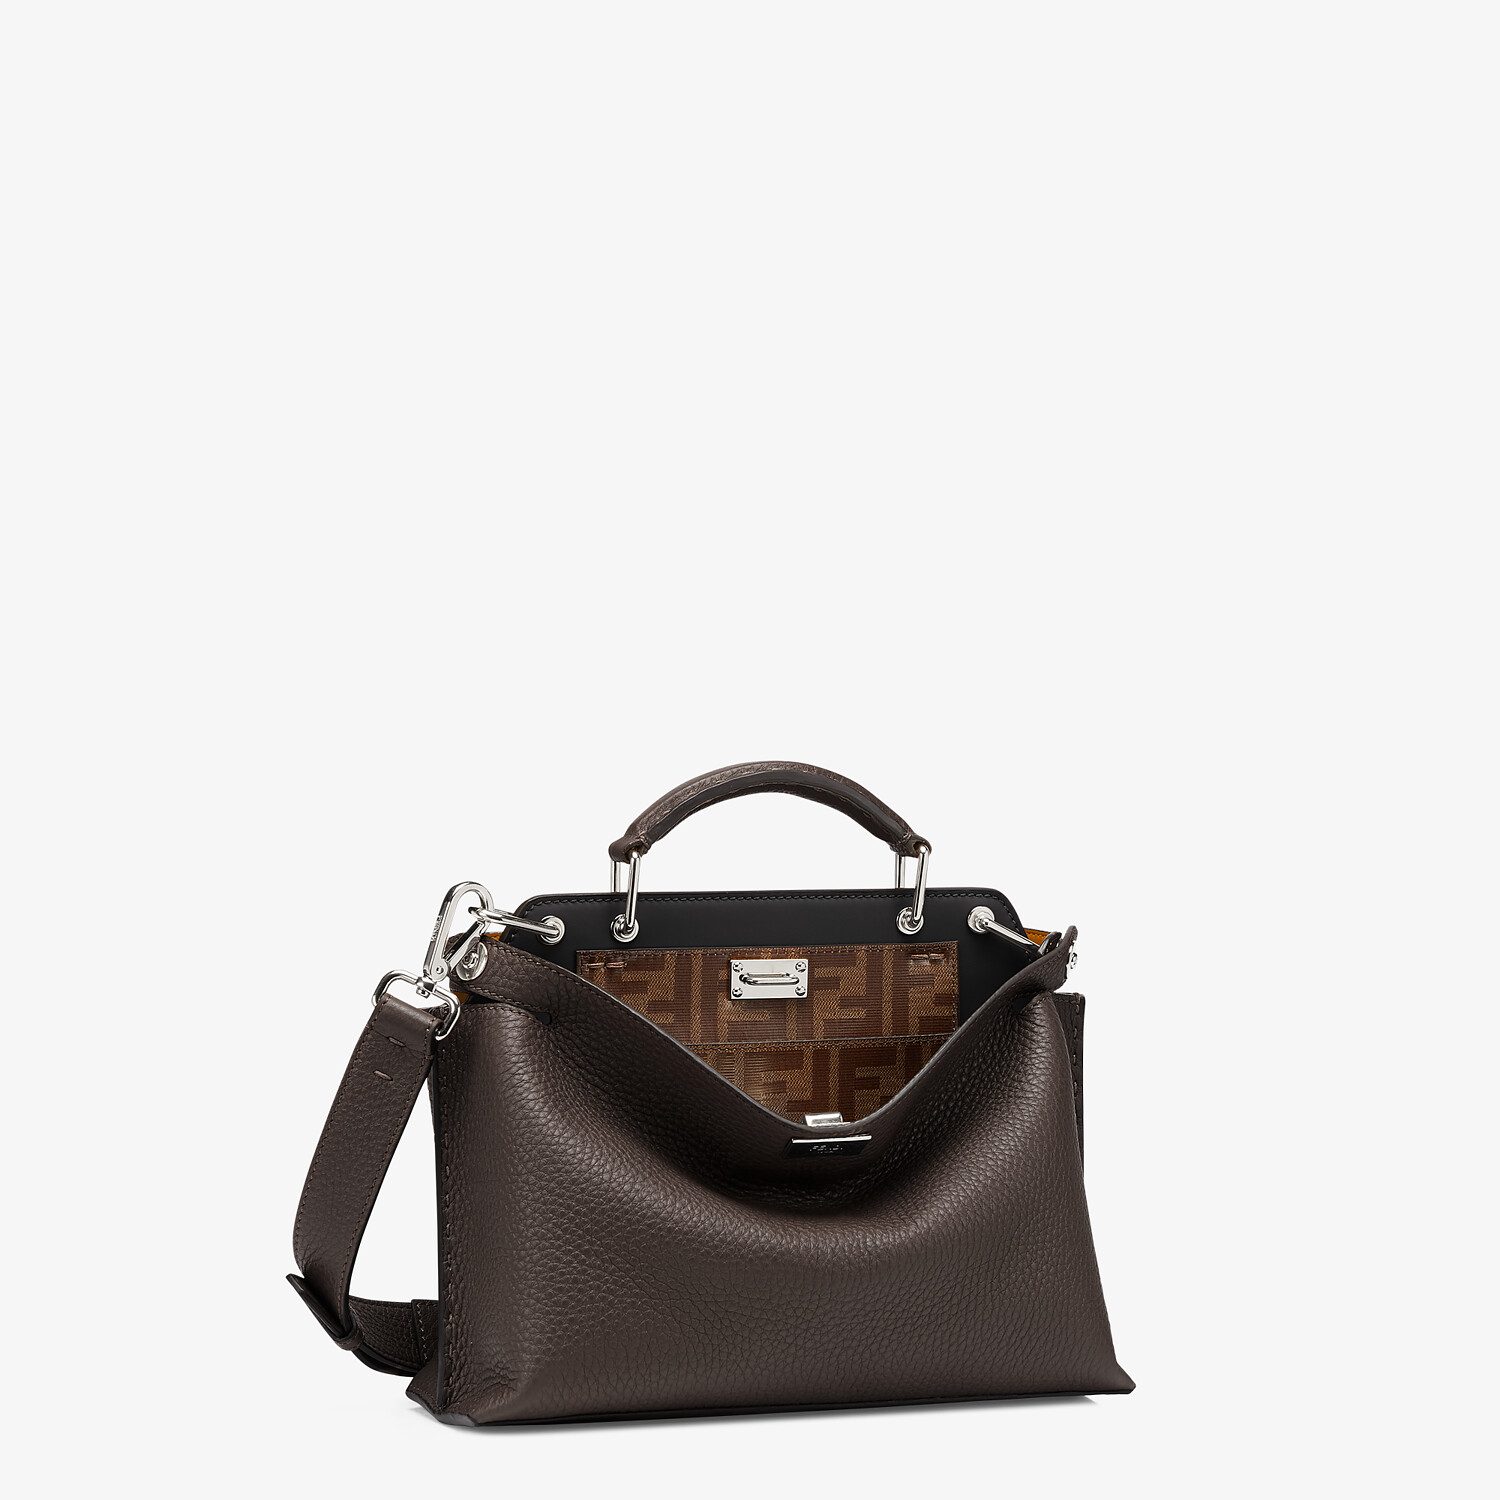 FENDI PEEKABOO ICONIC ESSENTIALLY - Tasche aus Leder in Braun - view 2 detail